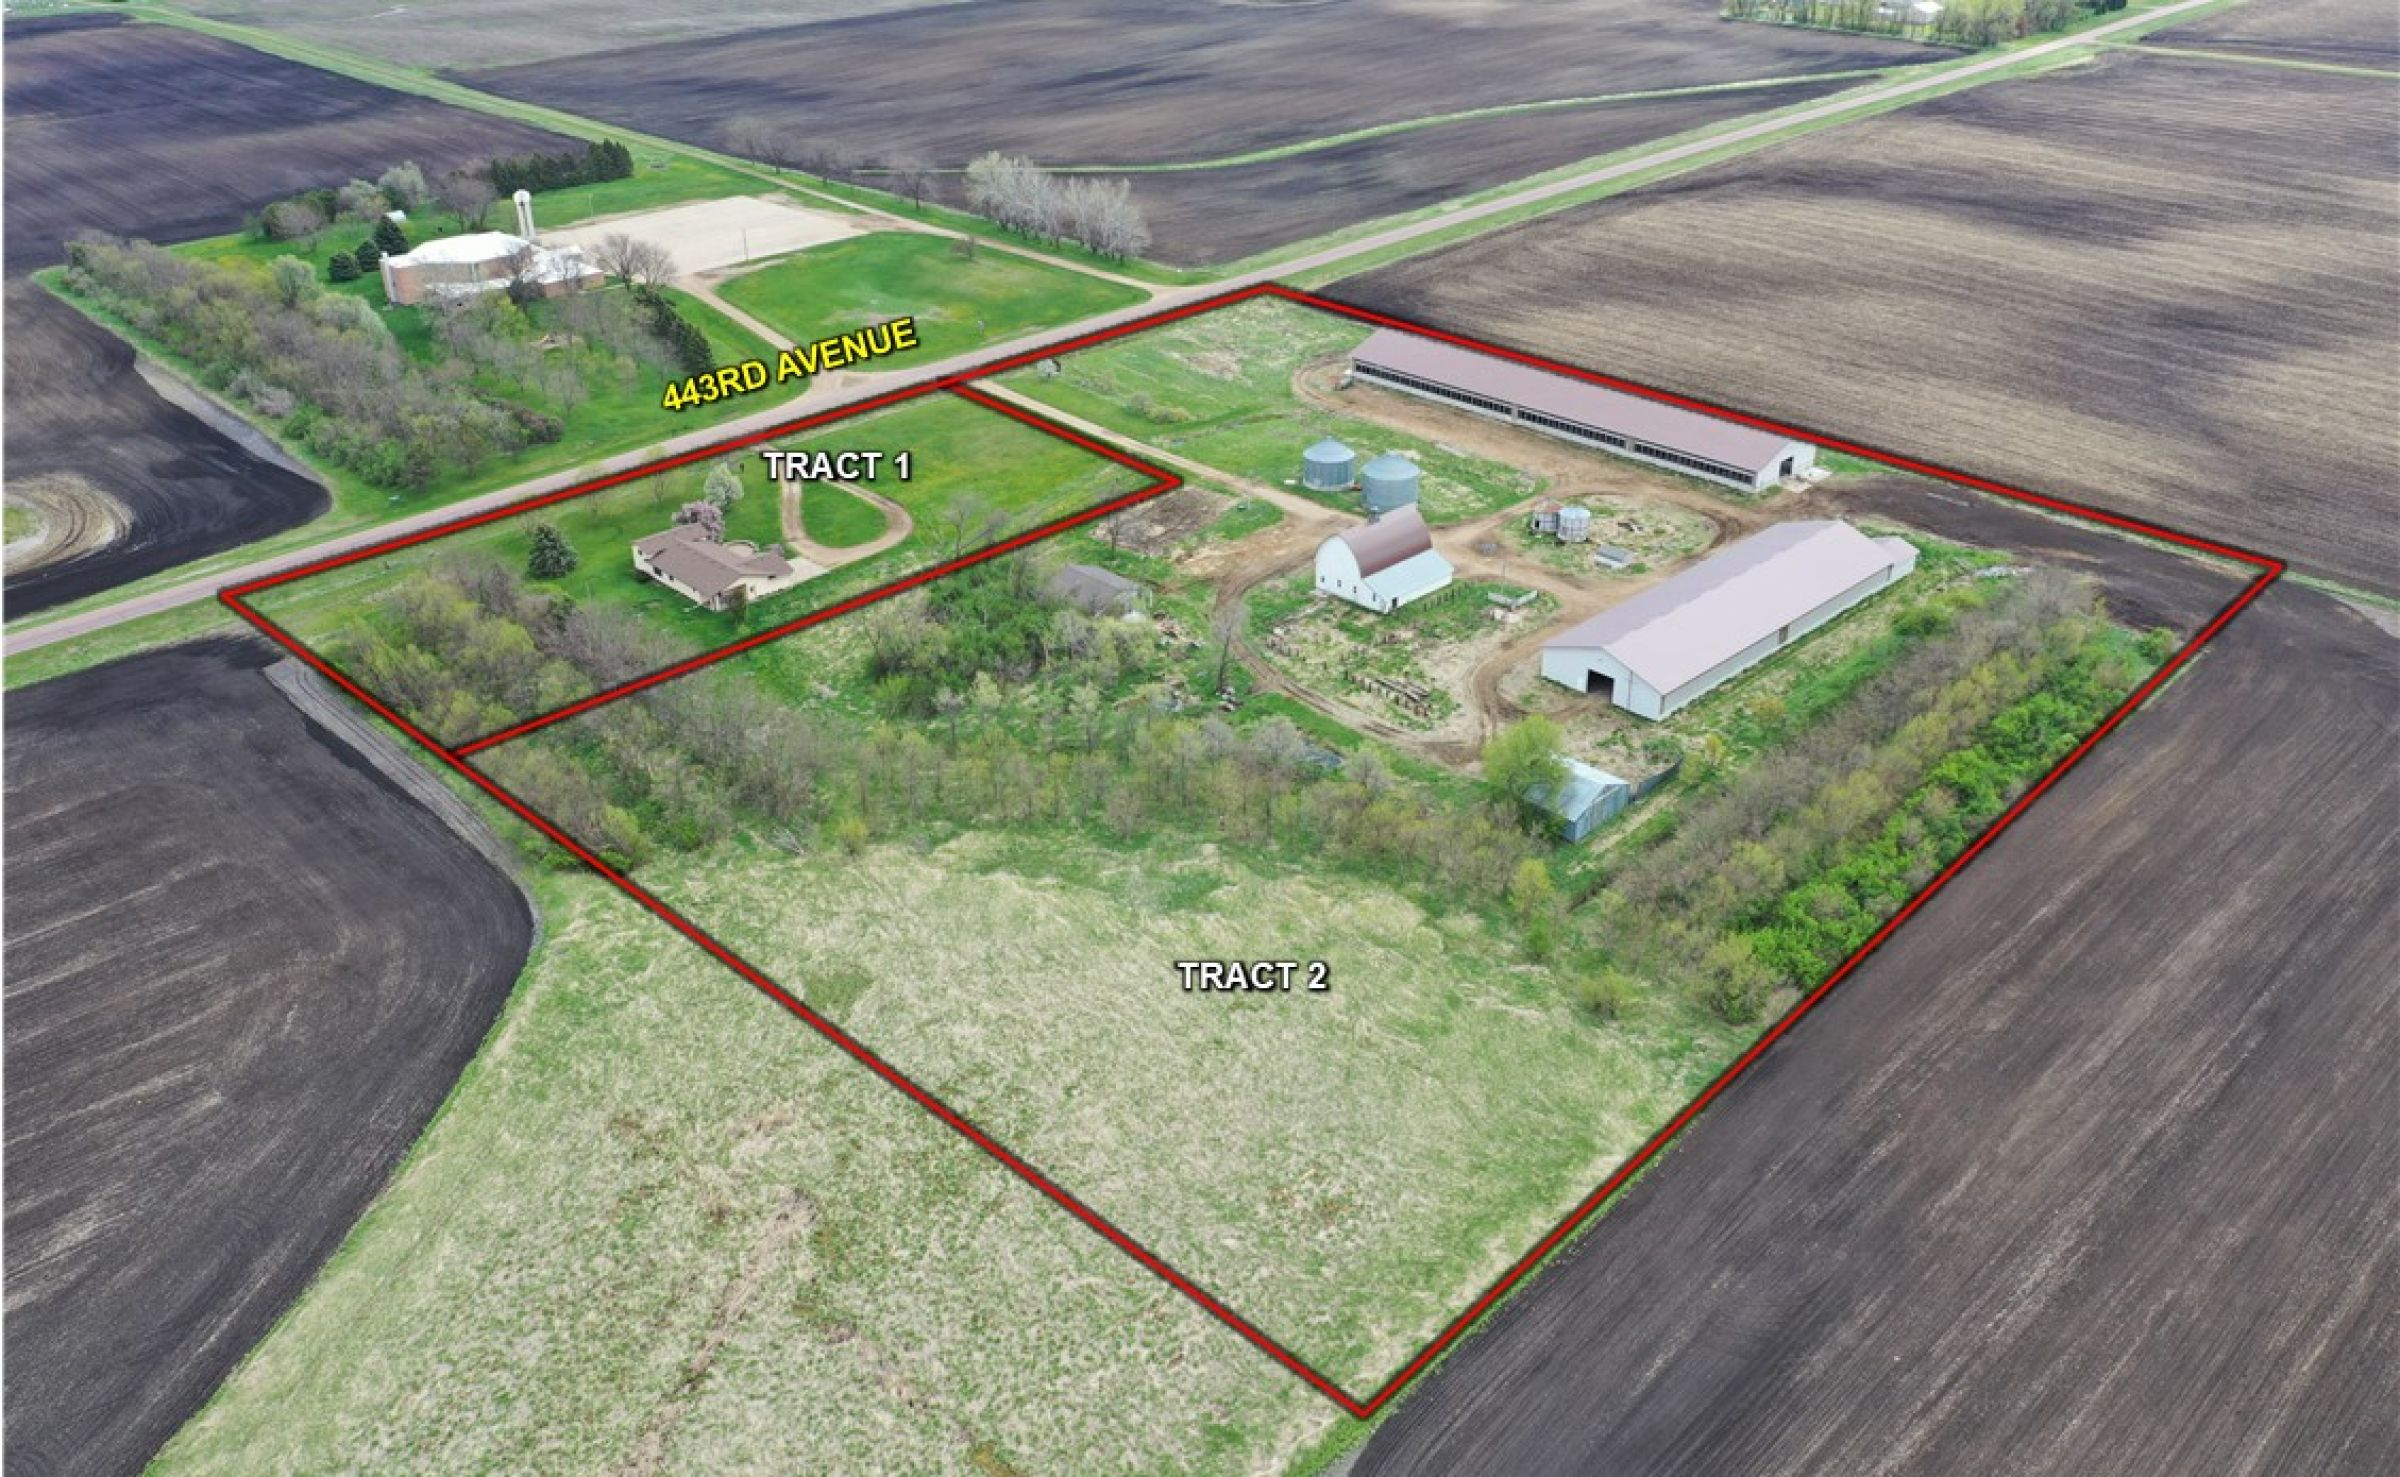 residential-auctions-land-turner-county-south-dakota-12-acres-listing-number-14971-2-2020-05-08-154911.jpg